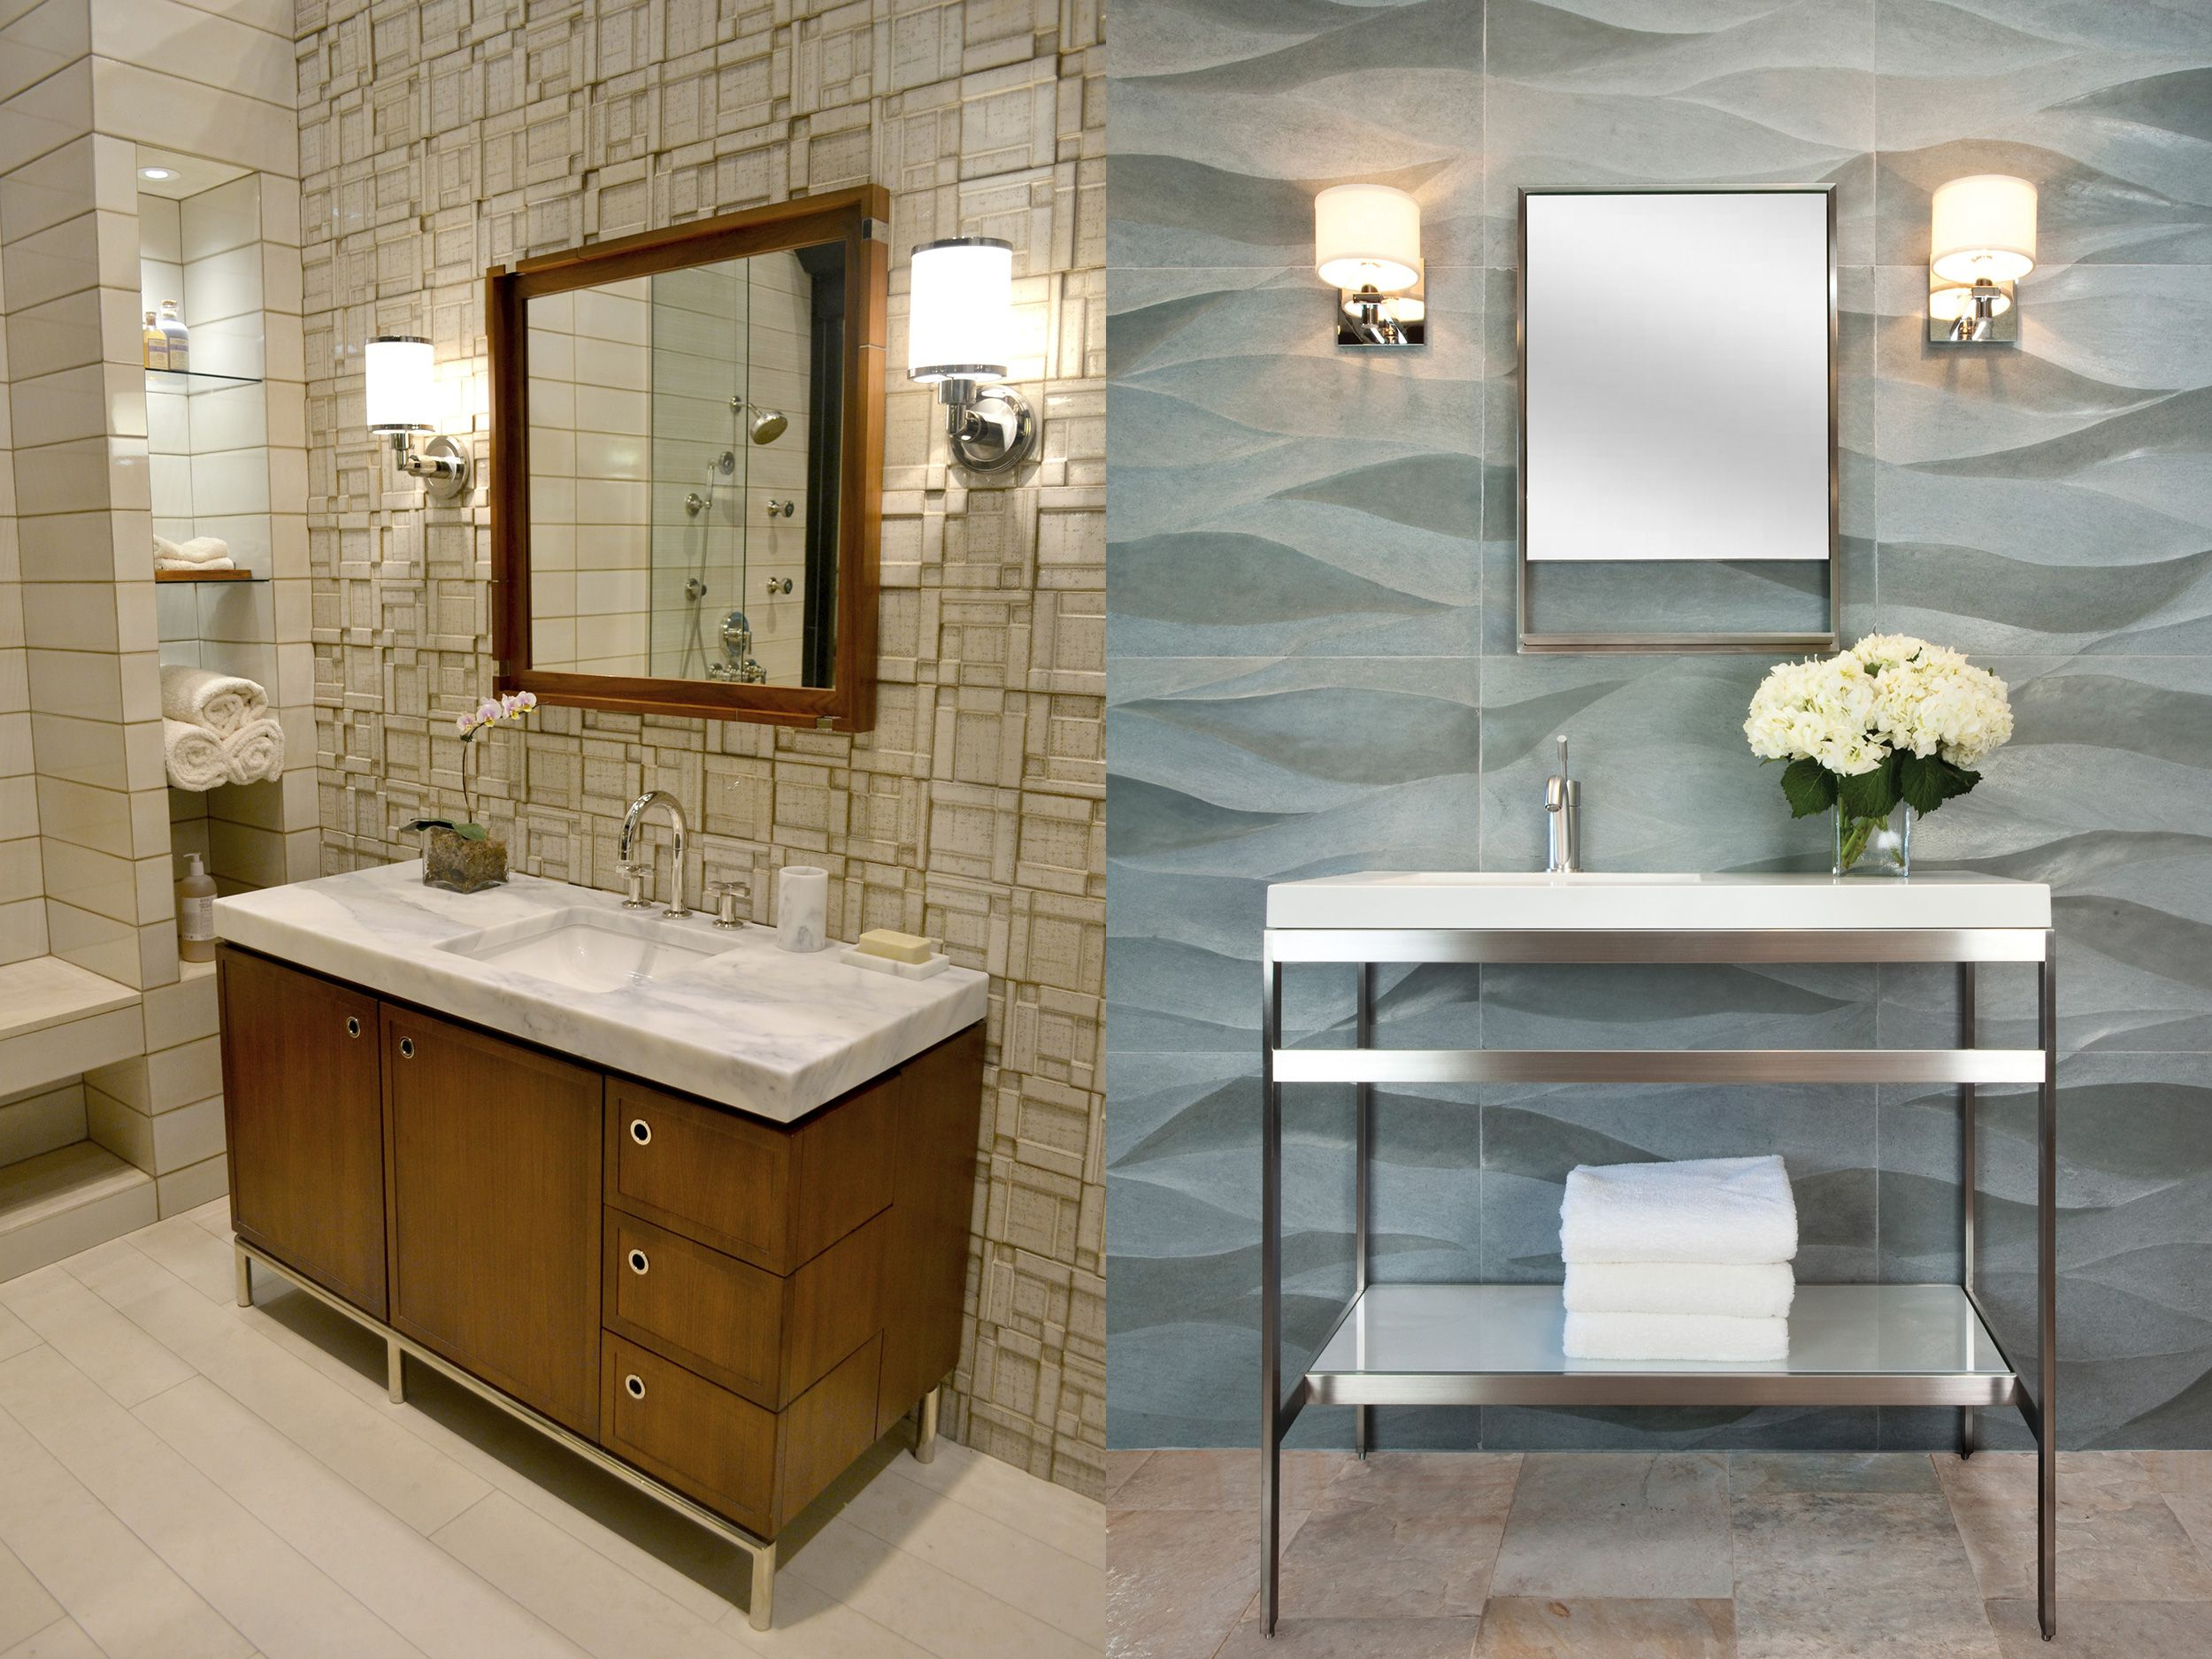 Artistic Tile Chattanooga Bathrooms Latest Bathroom within size 2500 X 1875